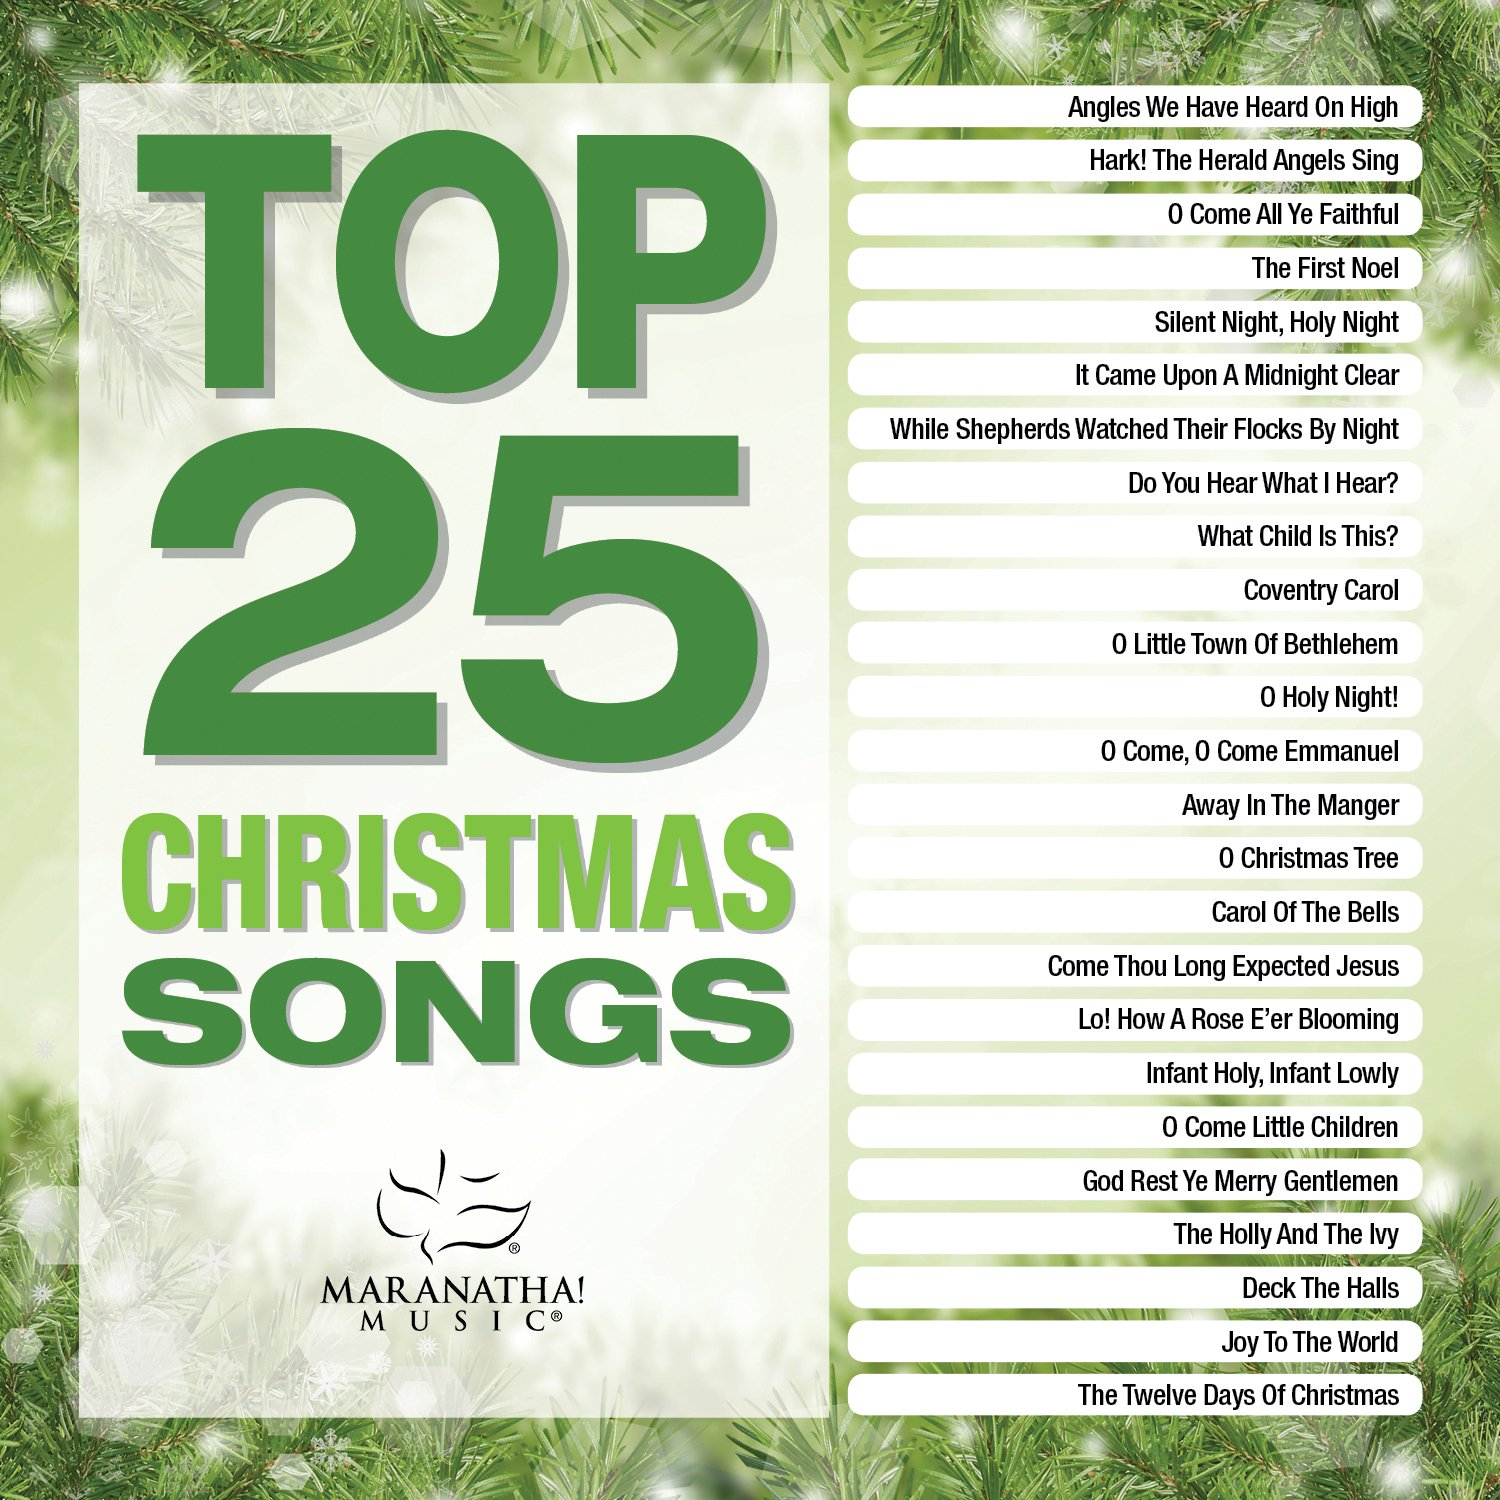 Maranatha! Music - Top 25 Christmas Songs [2 CD] - Amazon.com Music